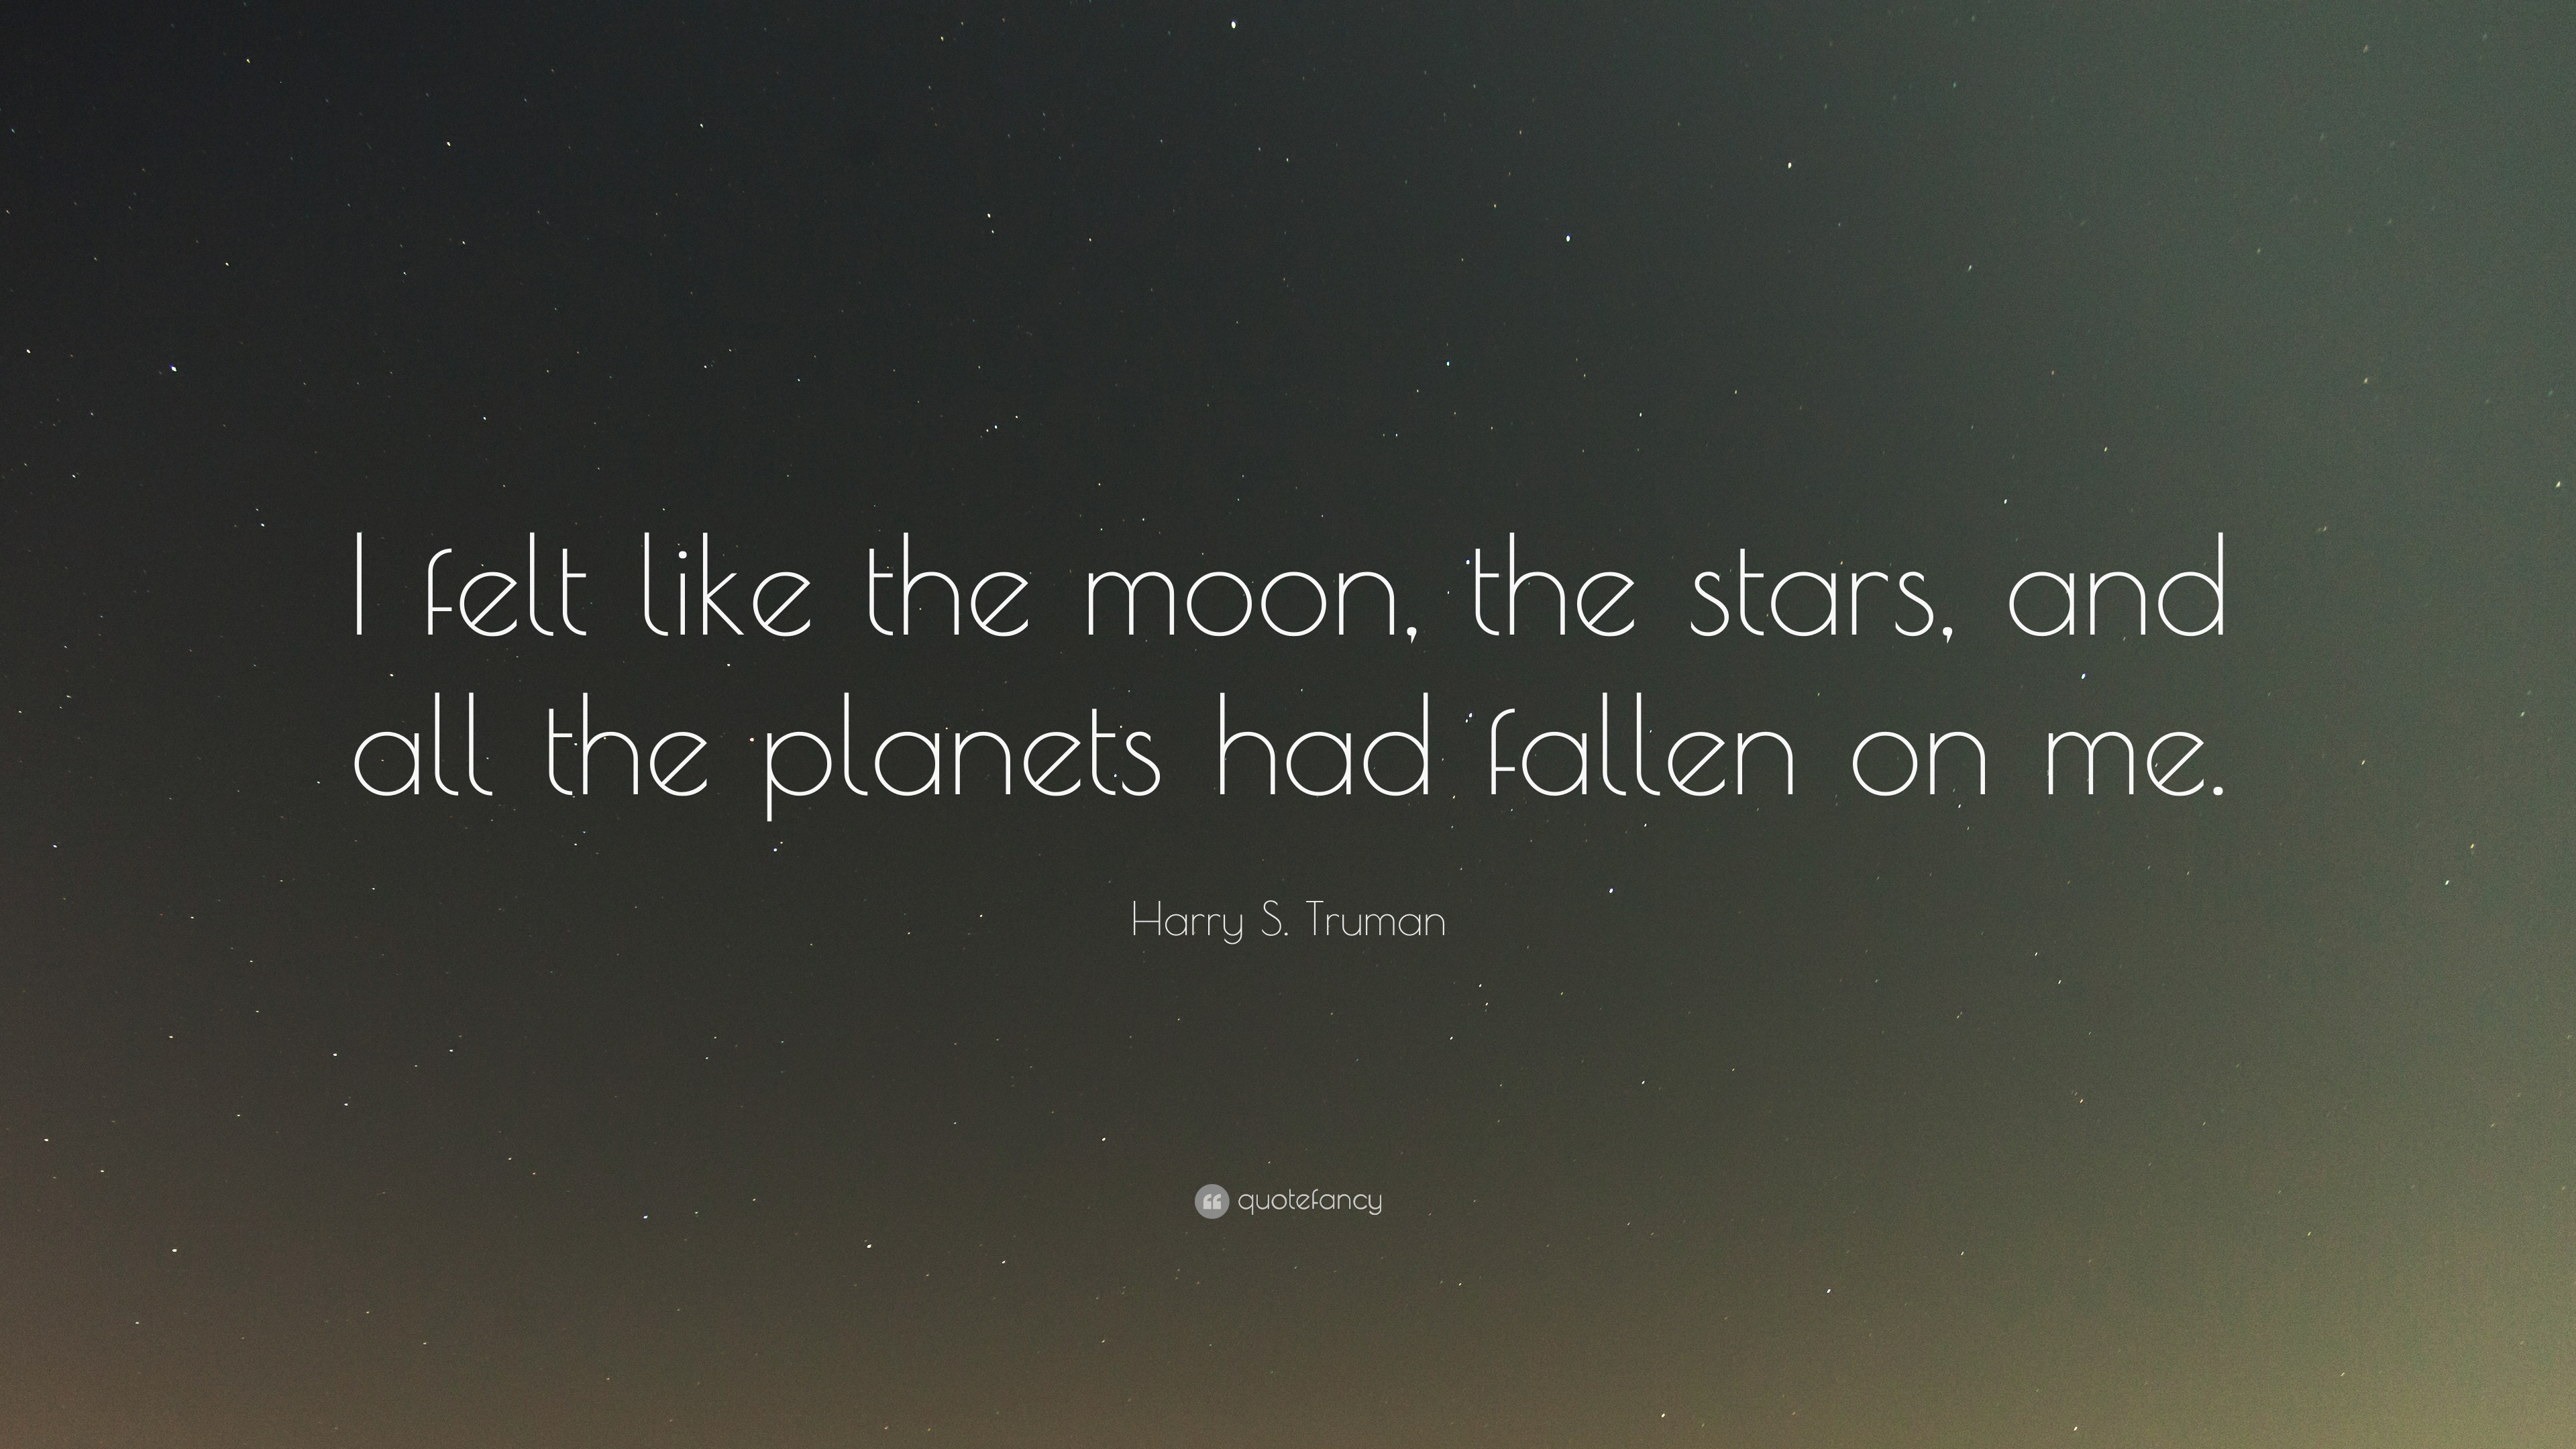 Harry S Truman Quote I Felt Like The Moon The Stars And All The